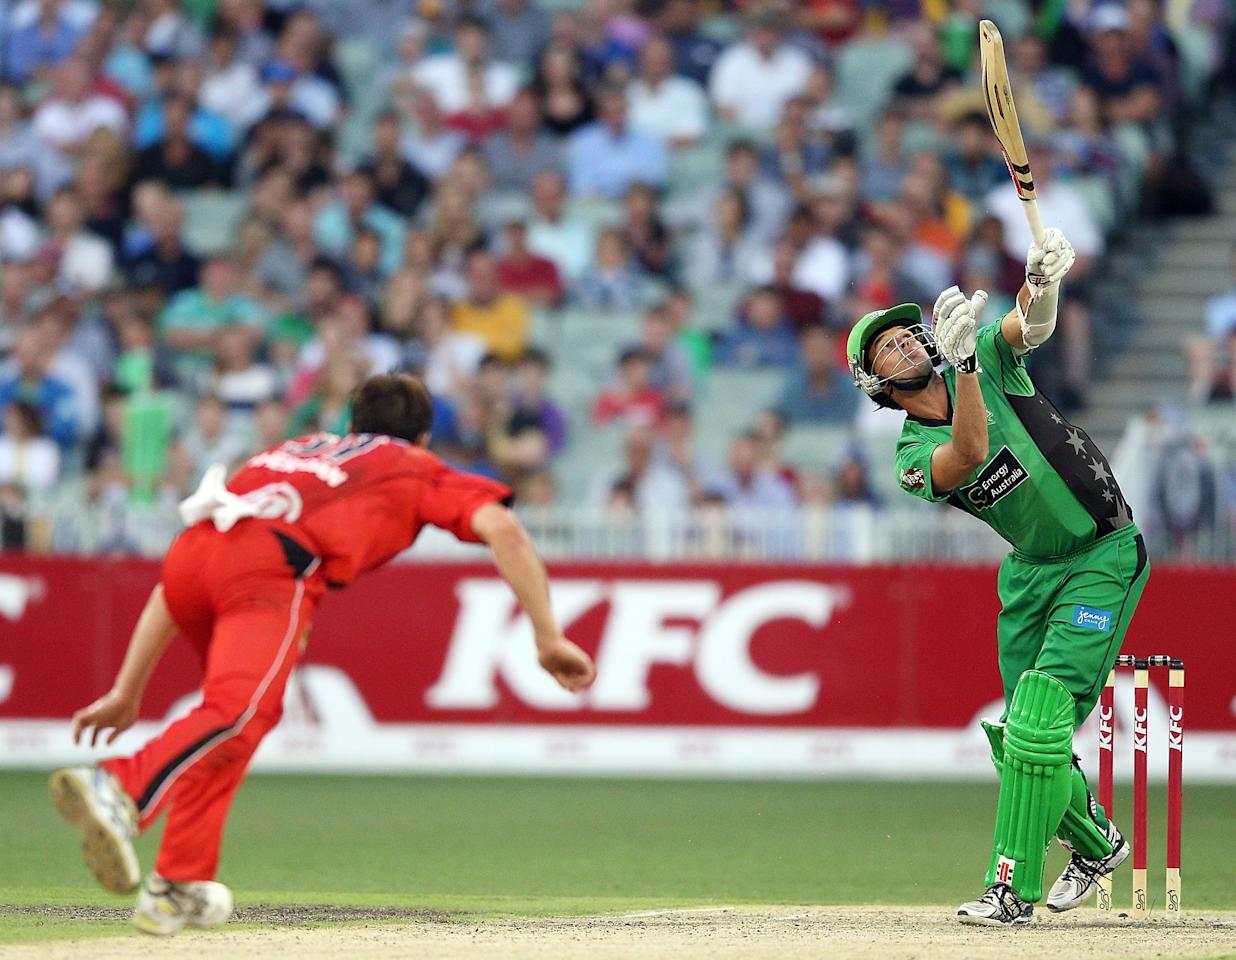 MELBOURNE, AUSTRALIA - JANUARY 06:  Clint McKay of the Melbourne Stars hits the ball and gets caught off the bowling of Will Sheridan of the Melbourne Renegades during the Big Bash League match between the Melbourne Stars and the Melbourne Renegades at Melbourne Cricket Ground on January 6, 2013 in Melbourne, Australia.  (Photo by Michael Dodge/Getty Images)